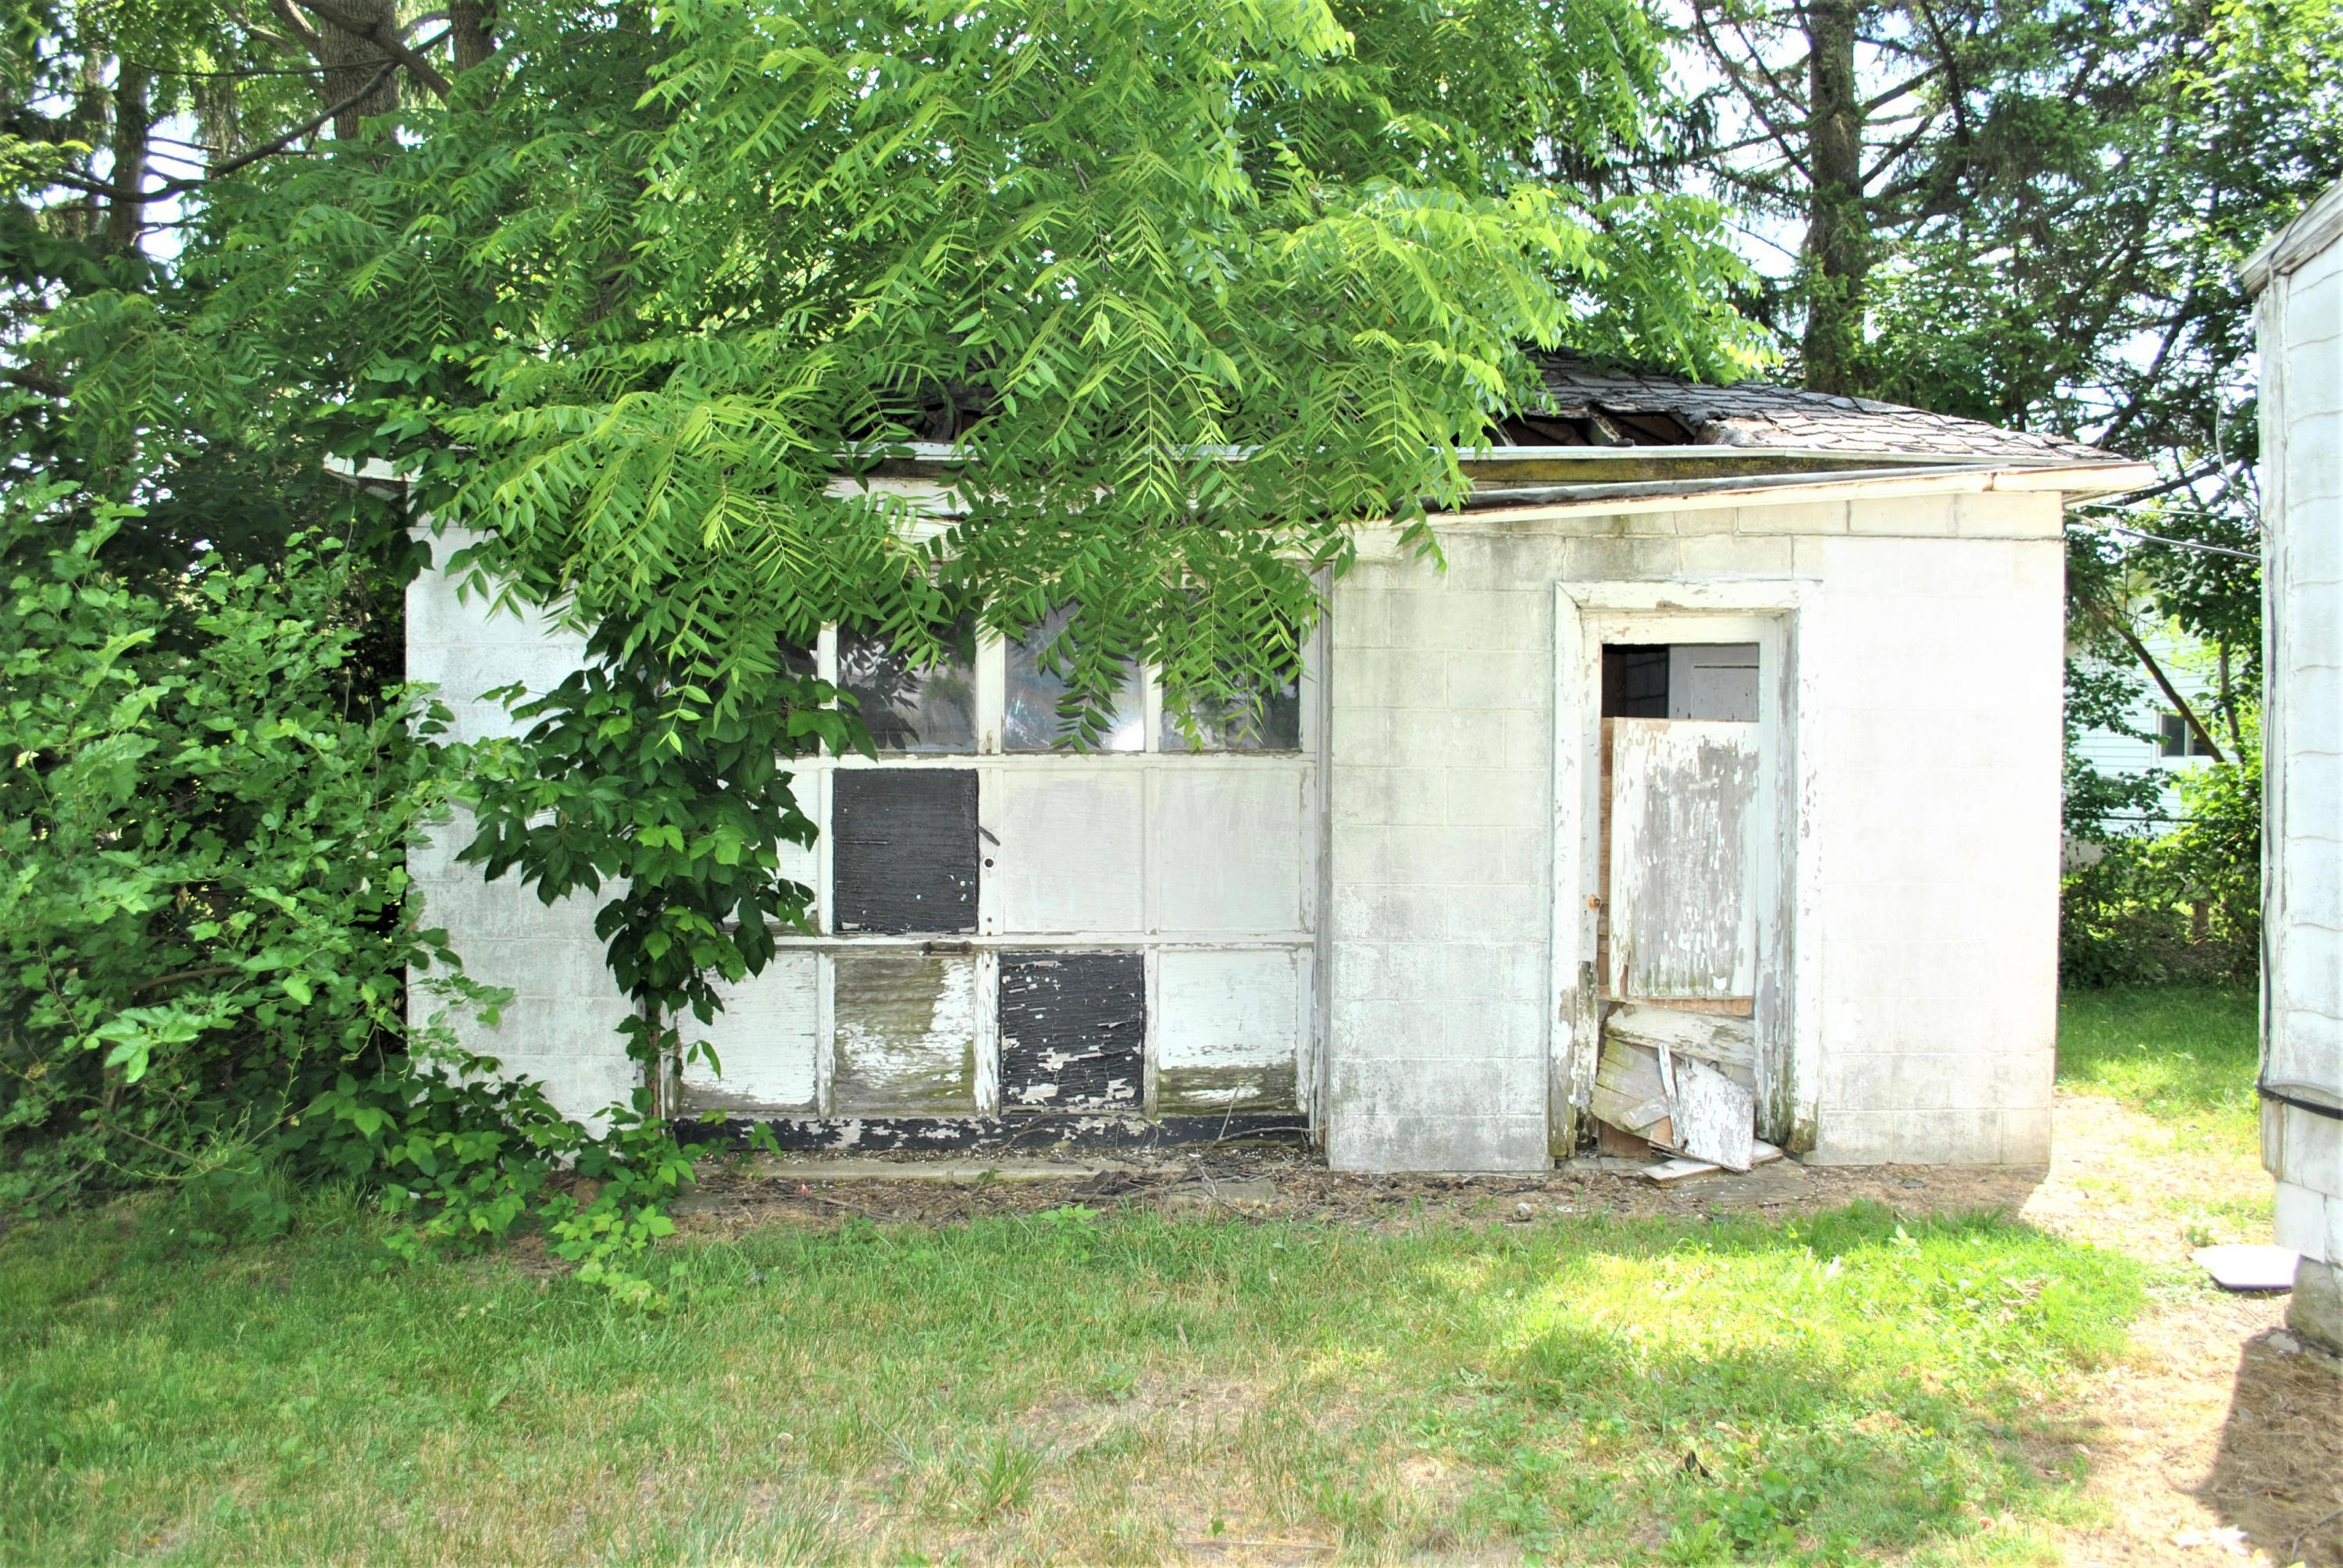 722 Church Street, Washington Court House, Ohio 43160, 2 Bedrooms Bedrooms, ,1 BathroomBathrooms,Residential,For Sale,Church,220023225